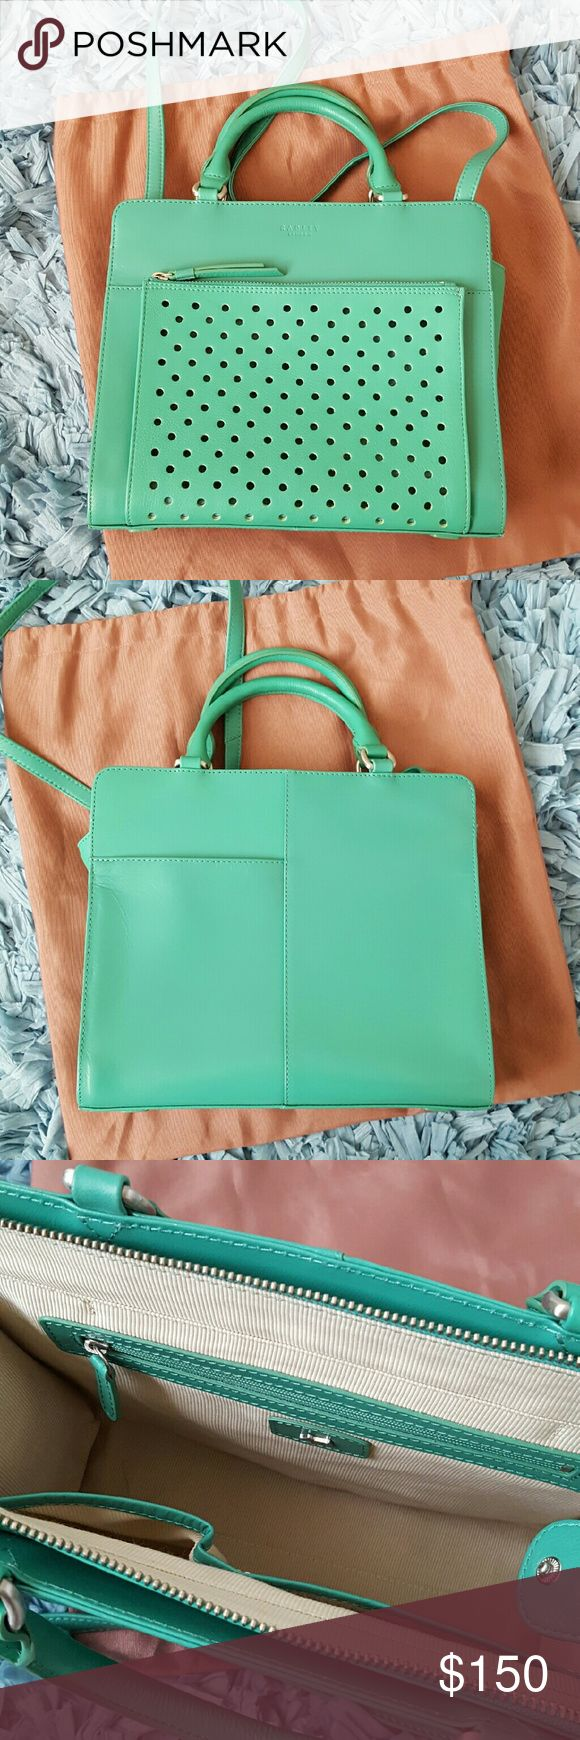 """Radley London Multi-way Bag This Kelly Green bag features grab handles and longer shoulder strap (not attachable or adjustable), exterior slip pocket and perforated zipper pocket, main zipper closure with interior zipper pocket and 2 slip pockets. Leather outer with fabric interior. Pre-loved and in excellent condition. This brand of bag is made to last. Grab handle drop is approximately 4.25"""" and strap drop is approximately 17"""". Dimensions are approximately 9.5"""" x 11"""" x 4"""". Radley London…"""